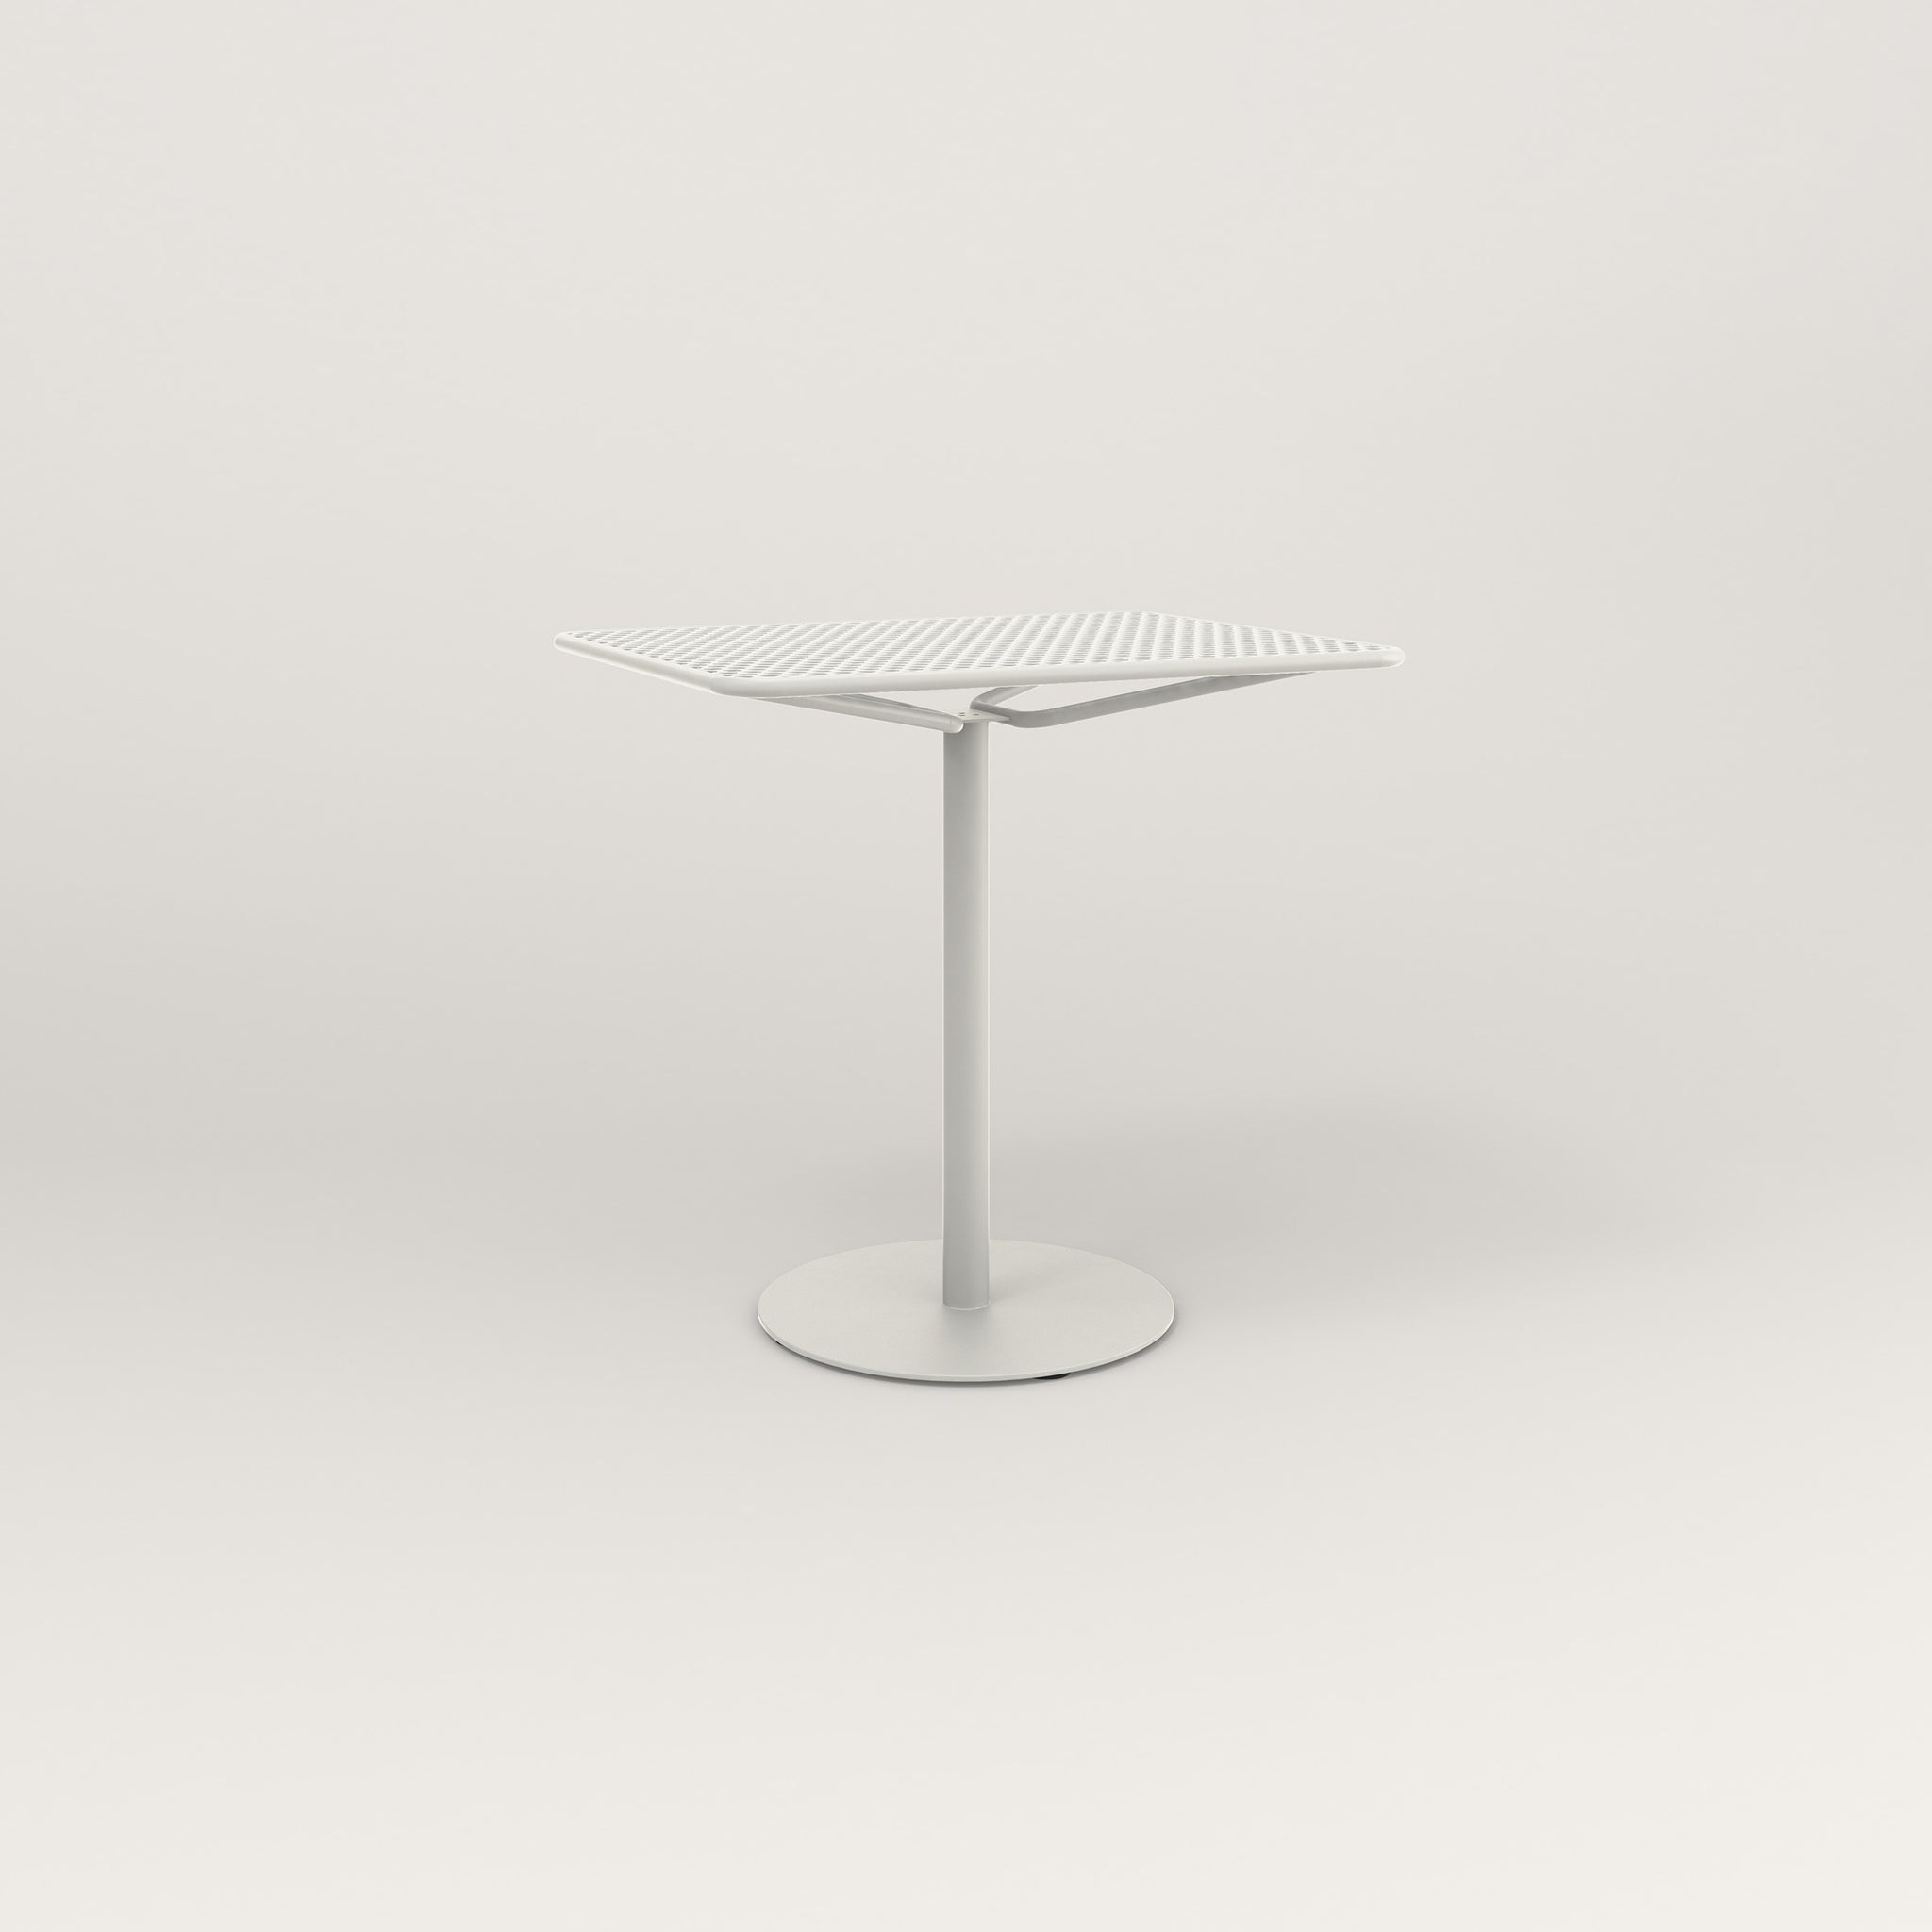 RAD Cafe Table, Rectangular Weighted Base in perforated steel and white powder coat.